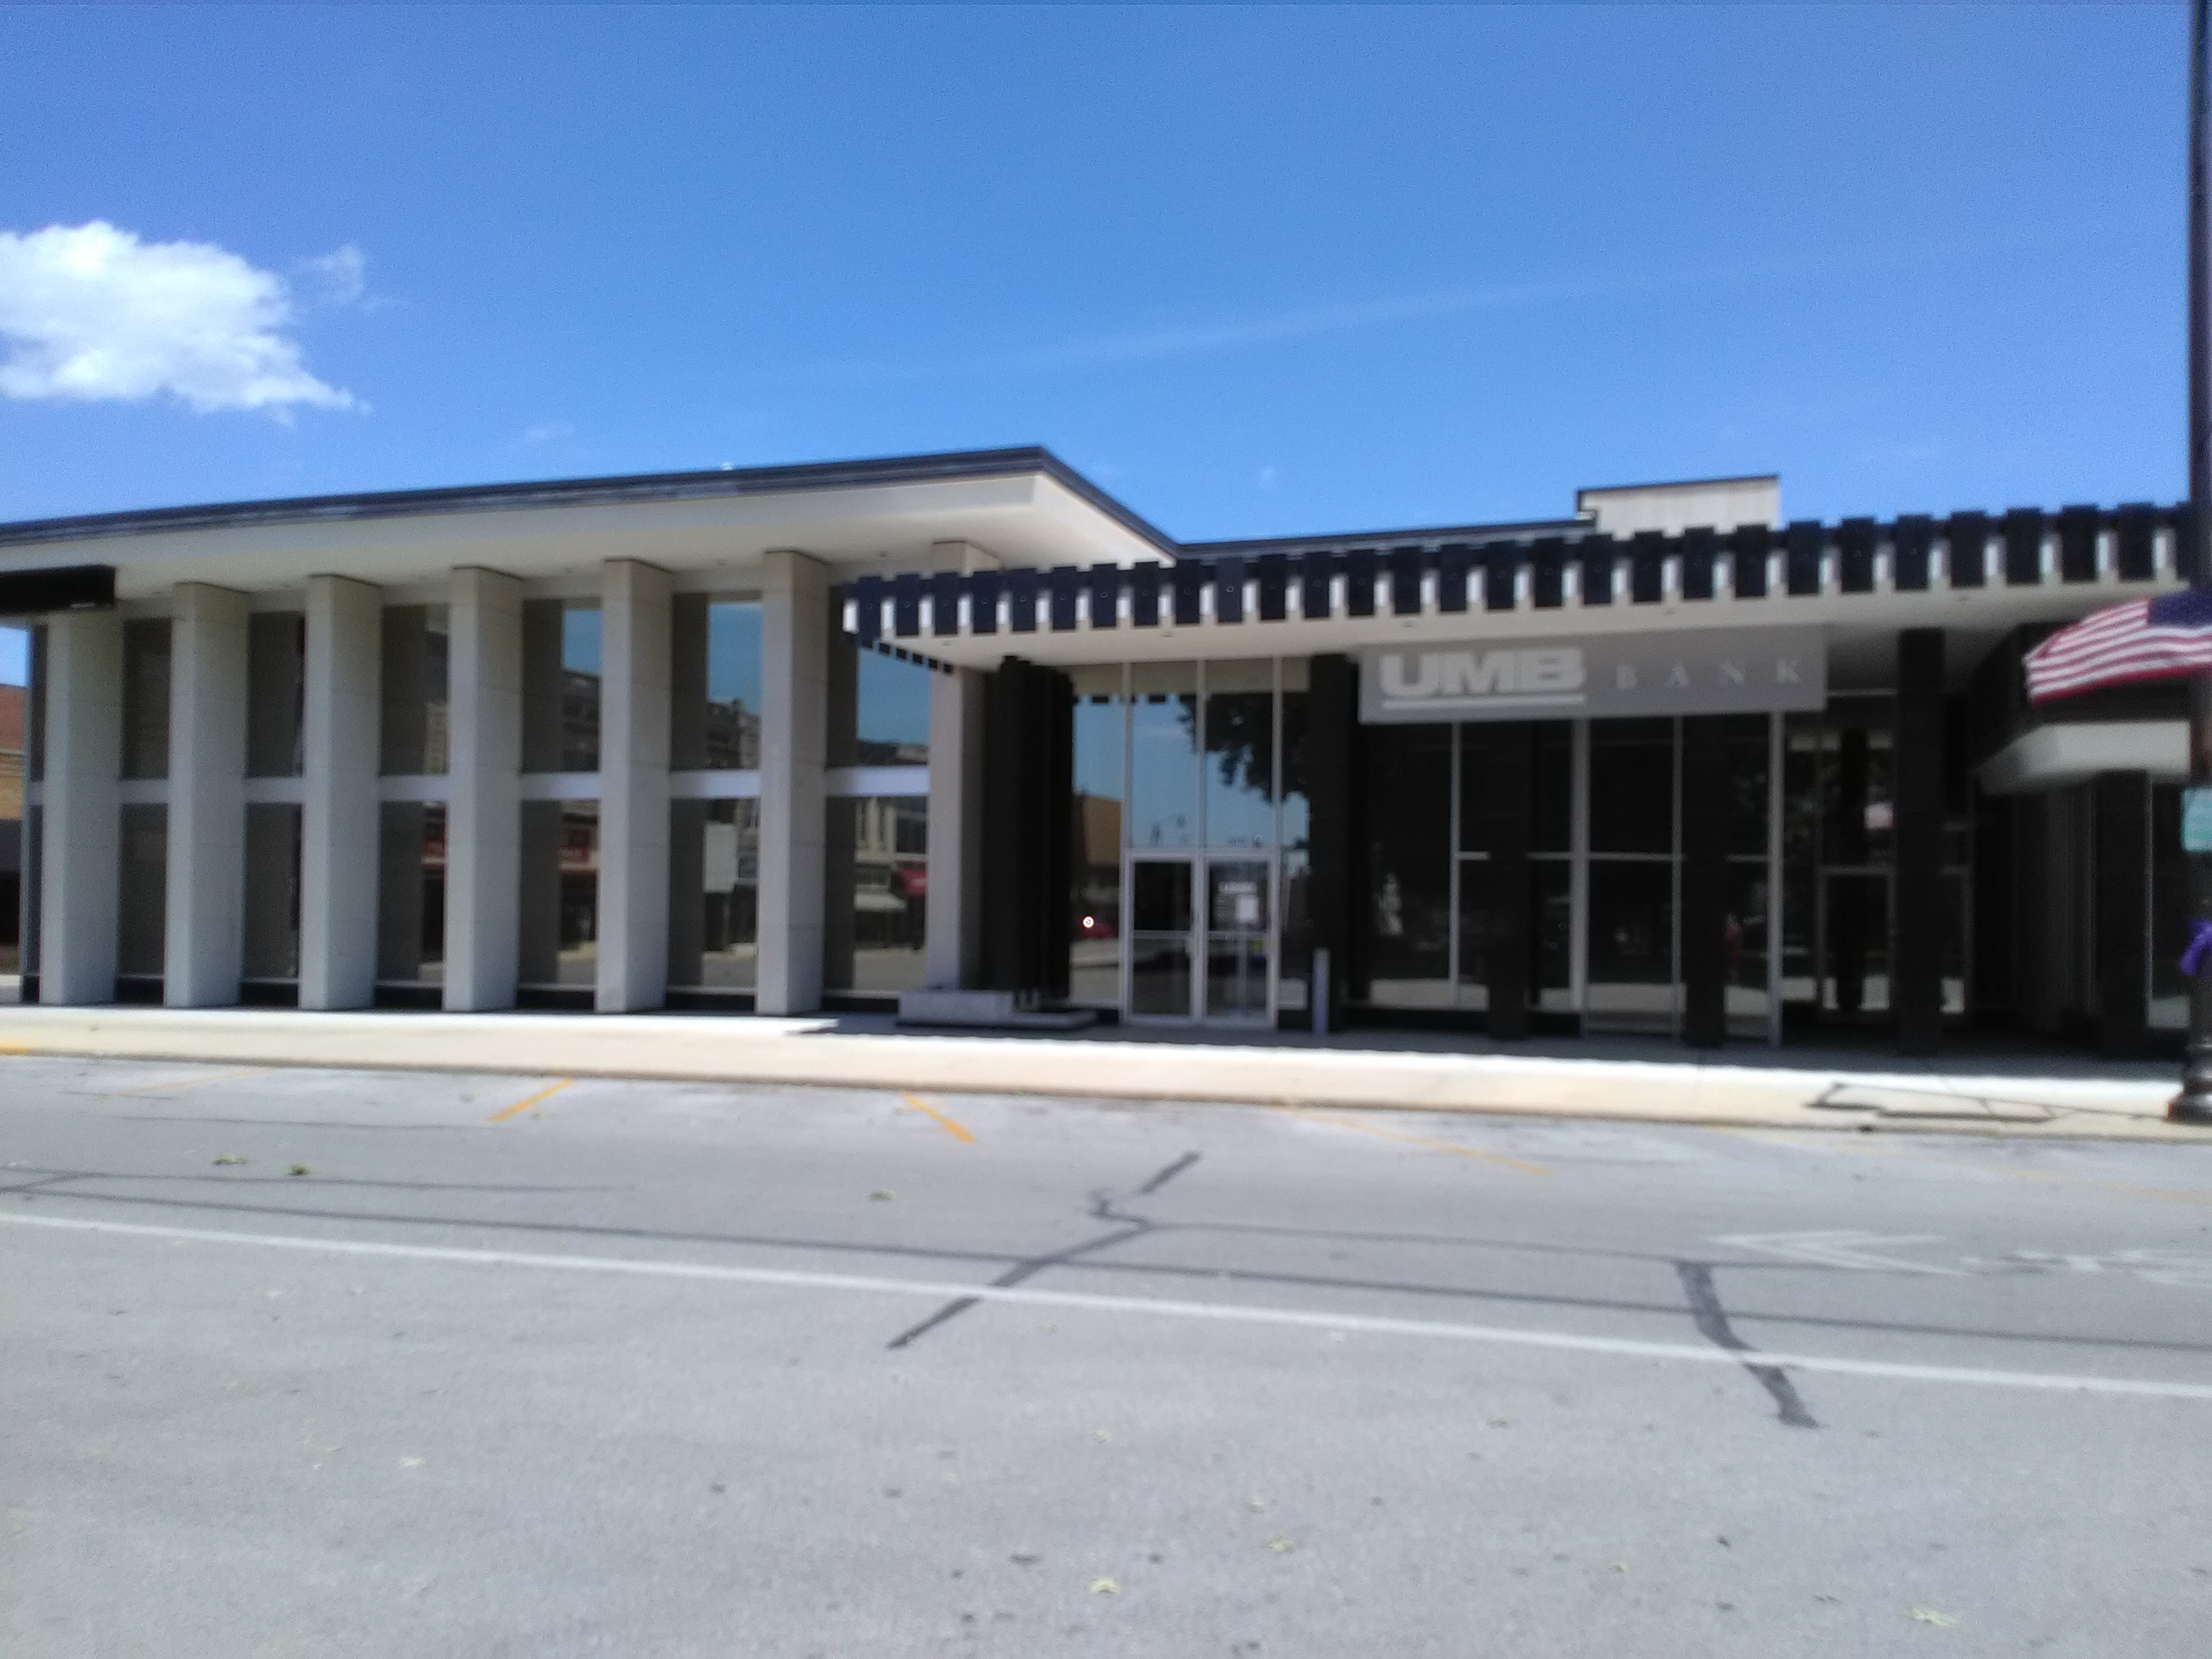 Current United Missouri Bank building built in 1963-64, located at 300-320 South Grant Street.